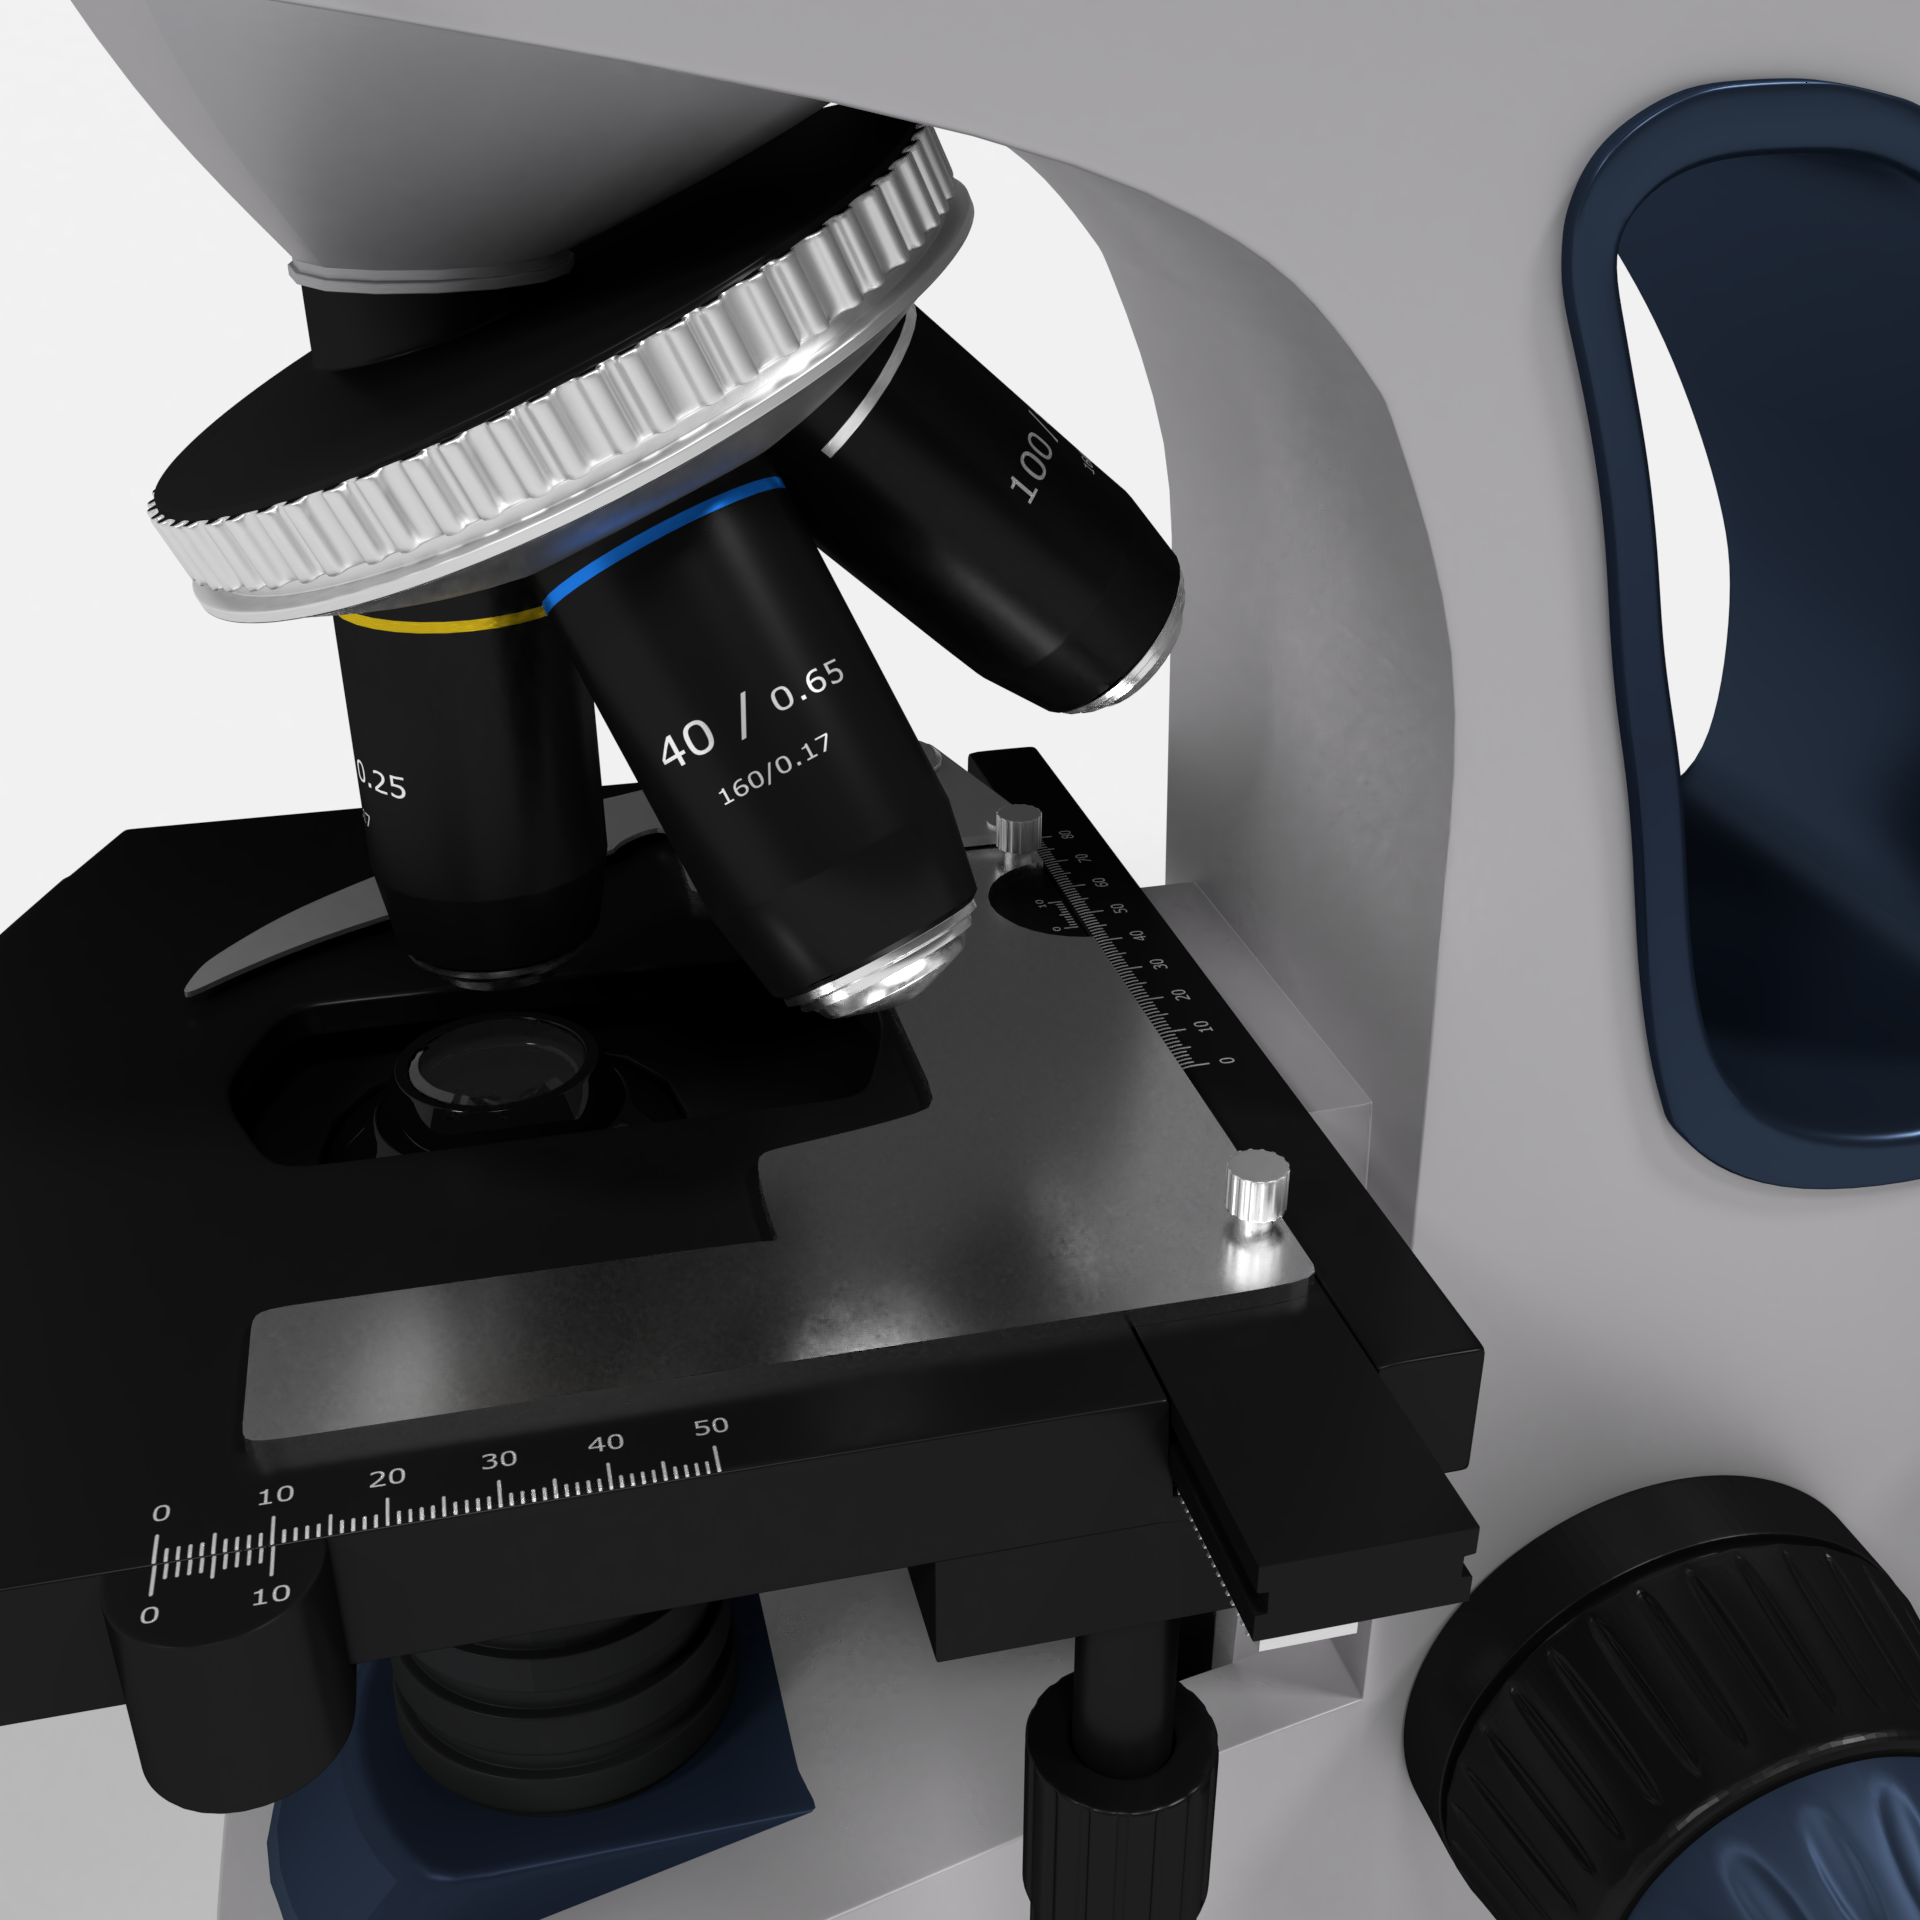 Microscope preview image 4